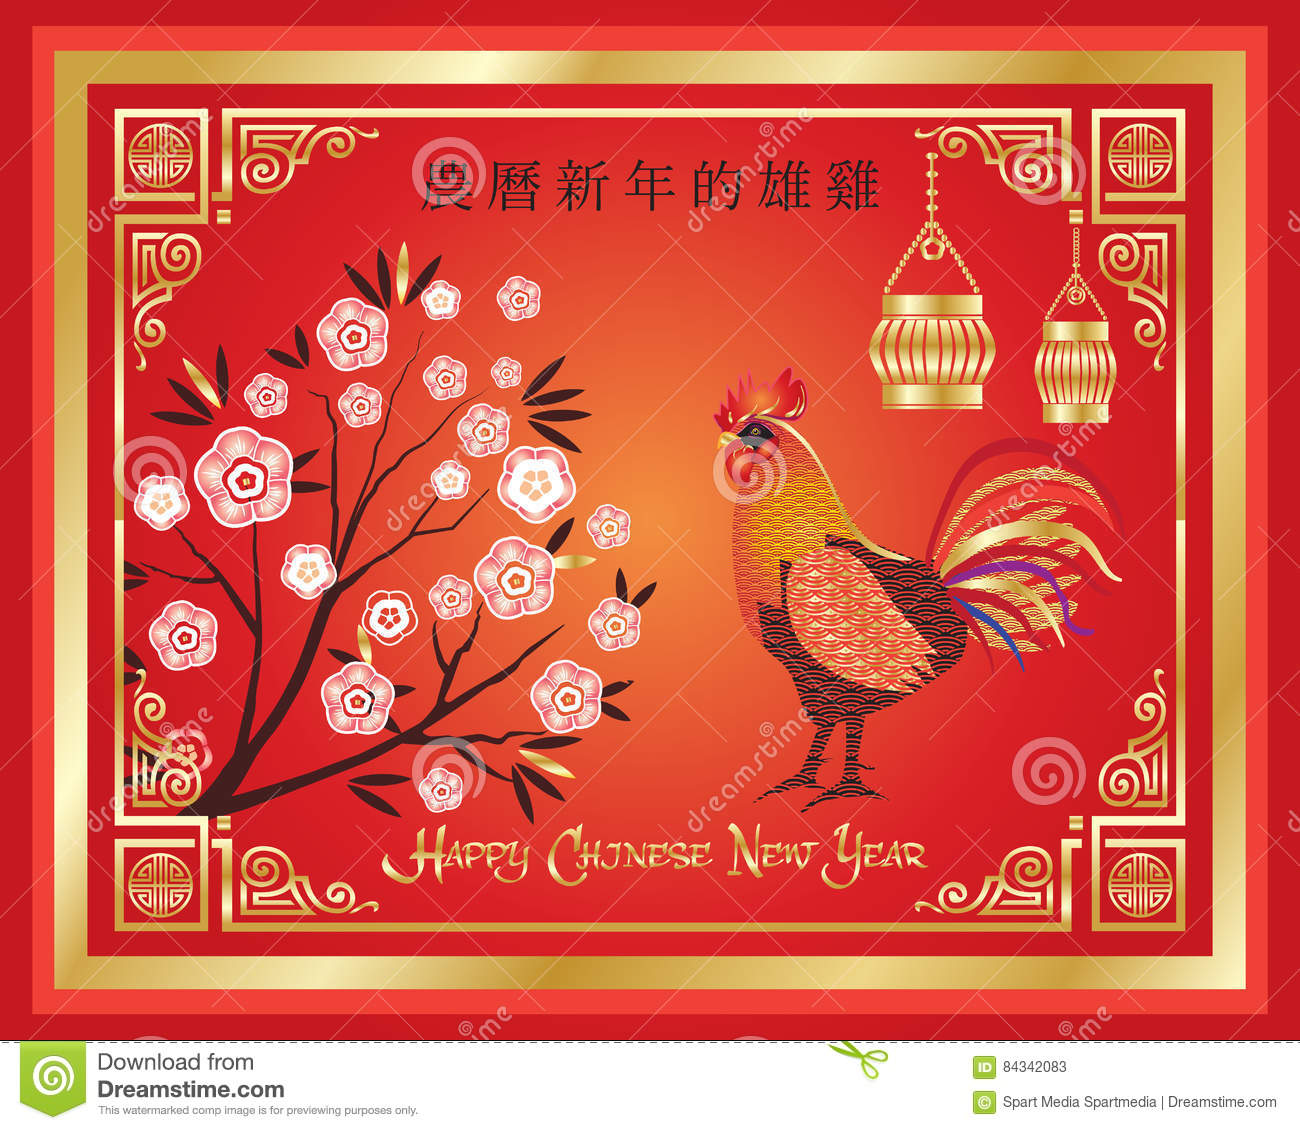 Chinese New Year Rooster Stock Vector Illustration Of Craft 84342083